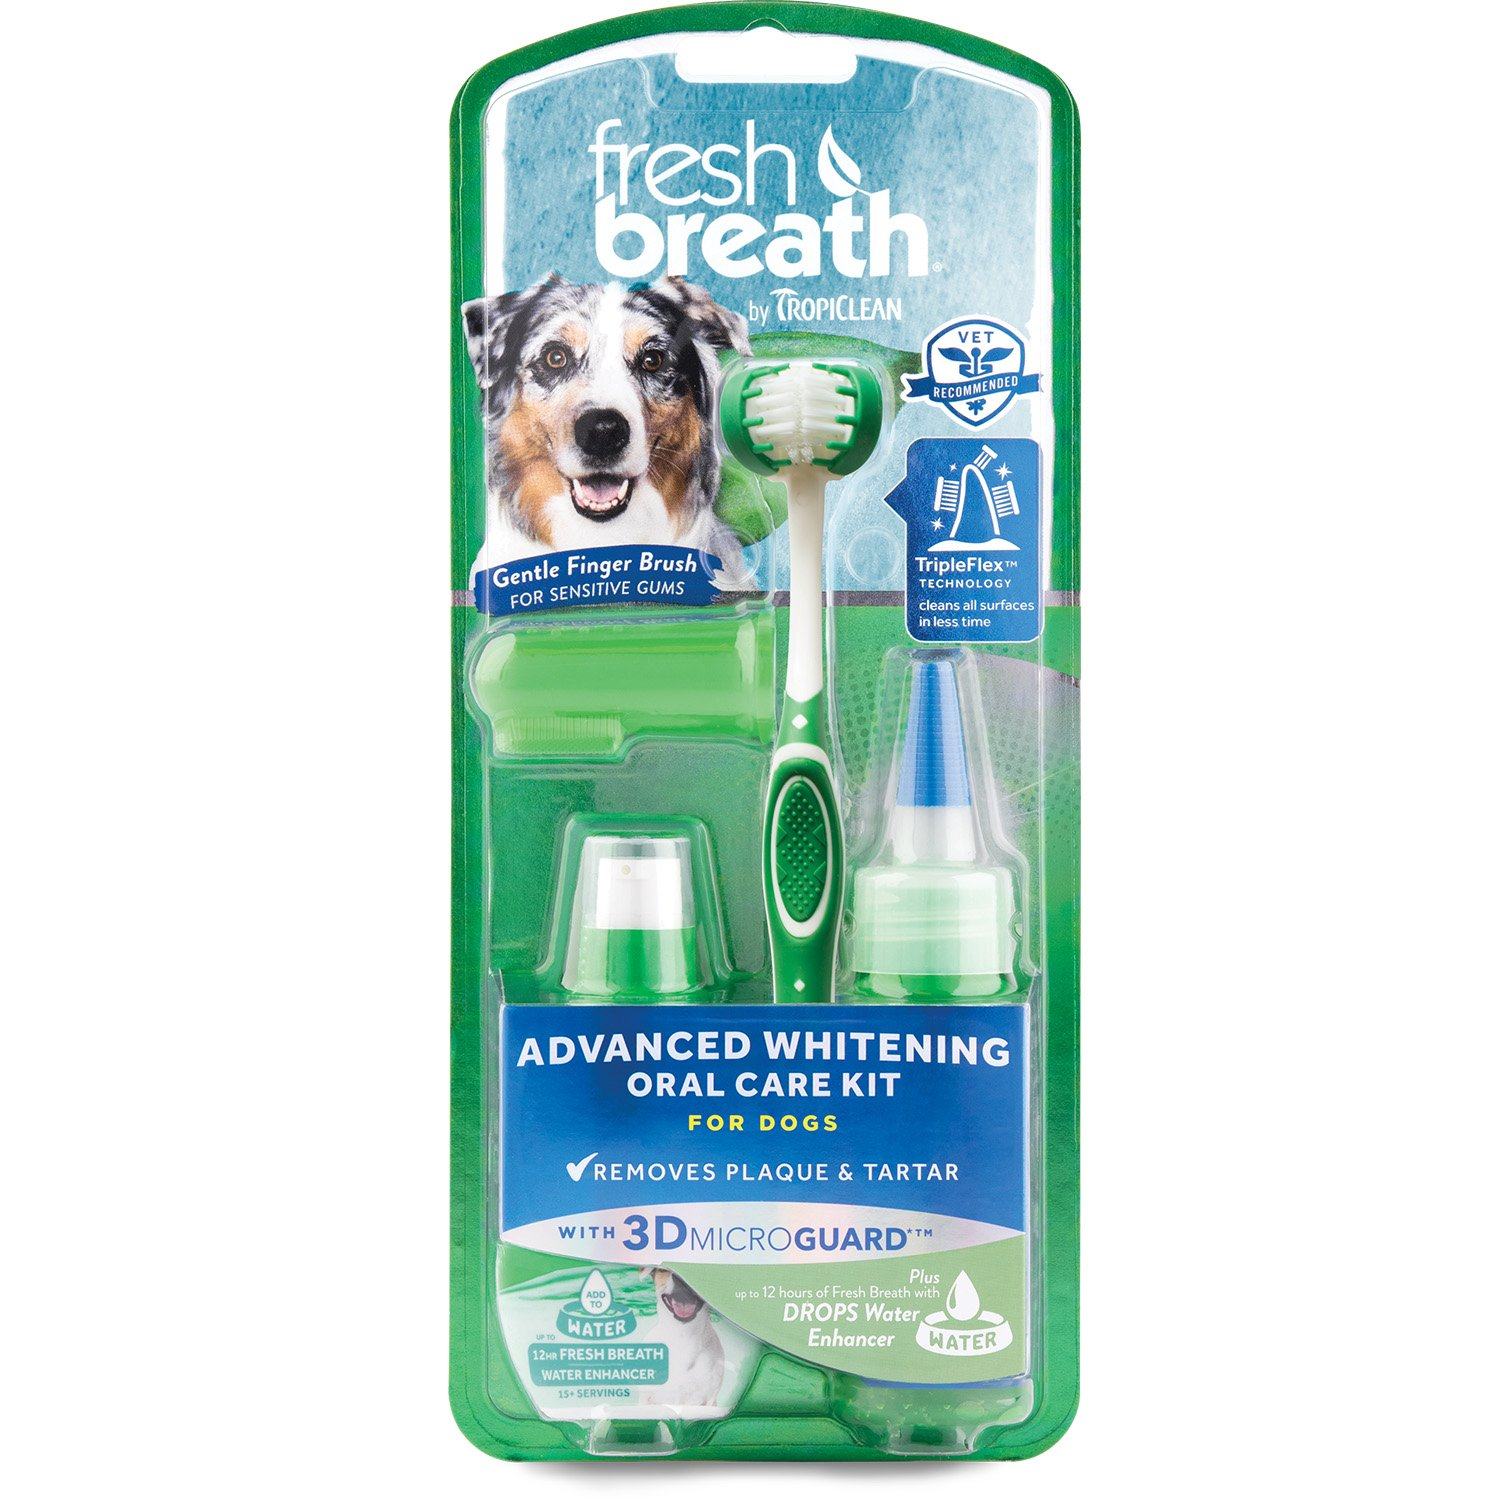 Fresh Breath by TropiClean Advanced Whitening Oral Care Kit for Dogs, Large, Made in USA